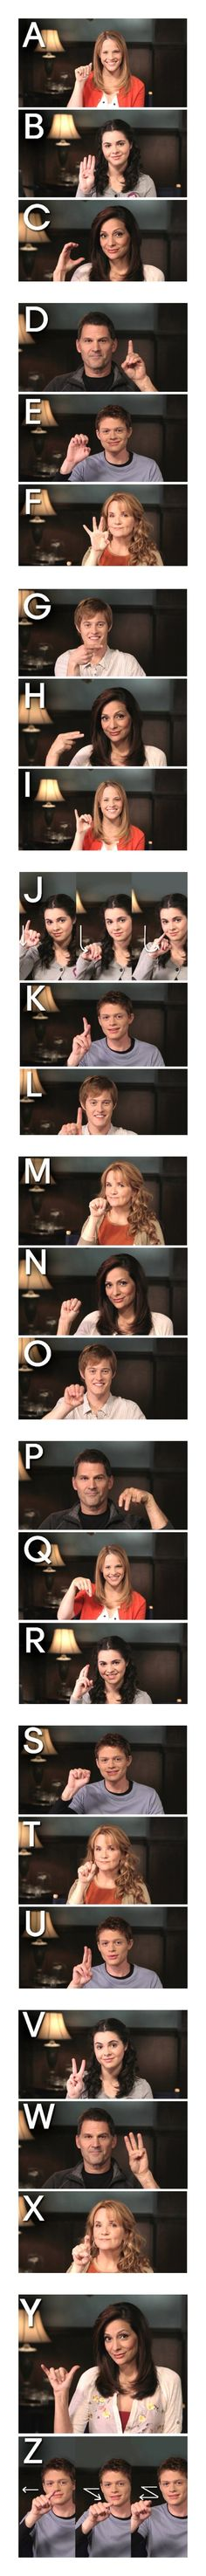 American Sign Language alphabet from the Switched at Birth cast - these people are so adorable I can't.